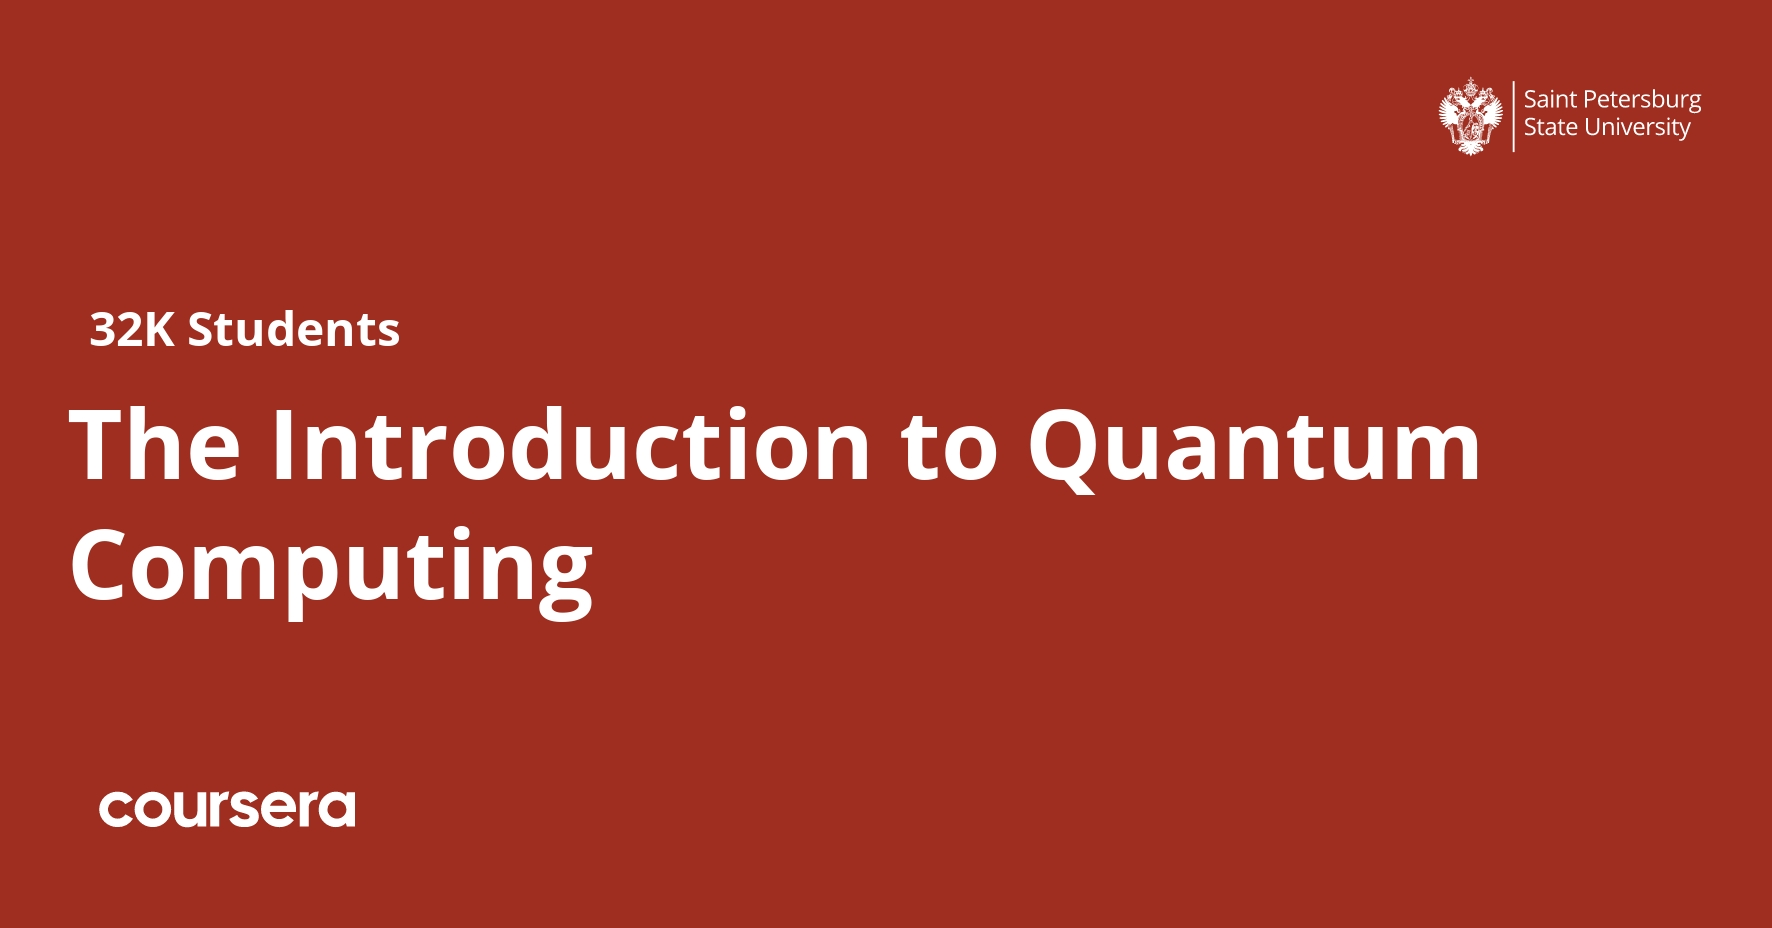 The Introduction to Quantum Computing (Coursera)